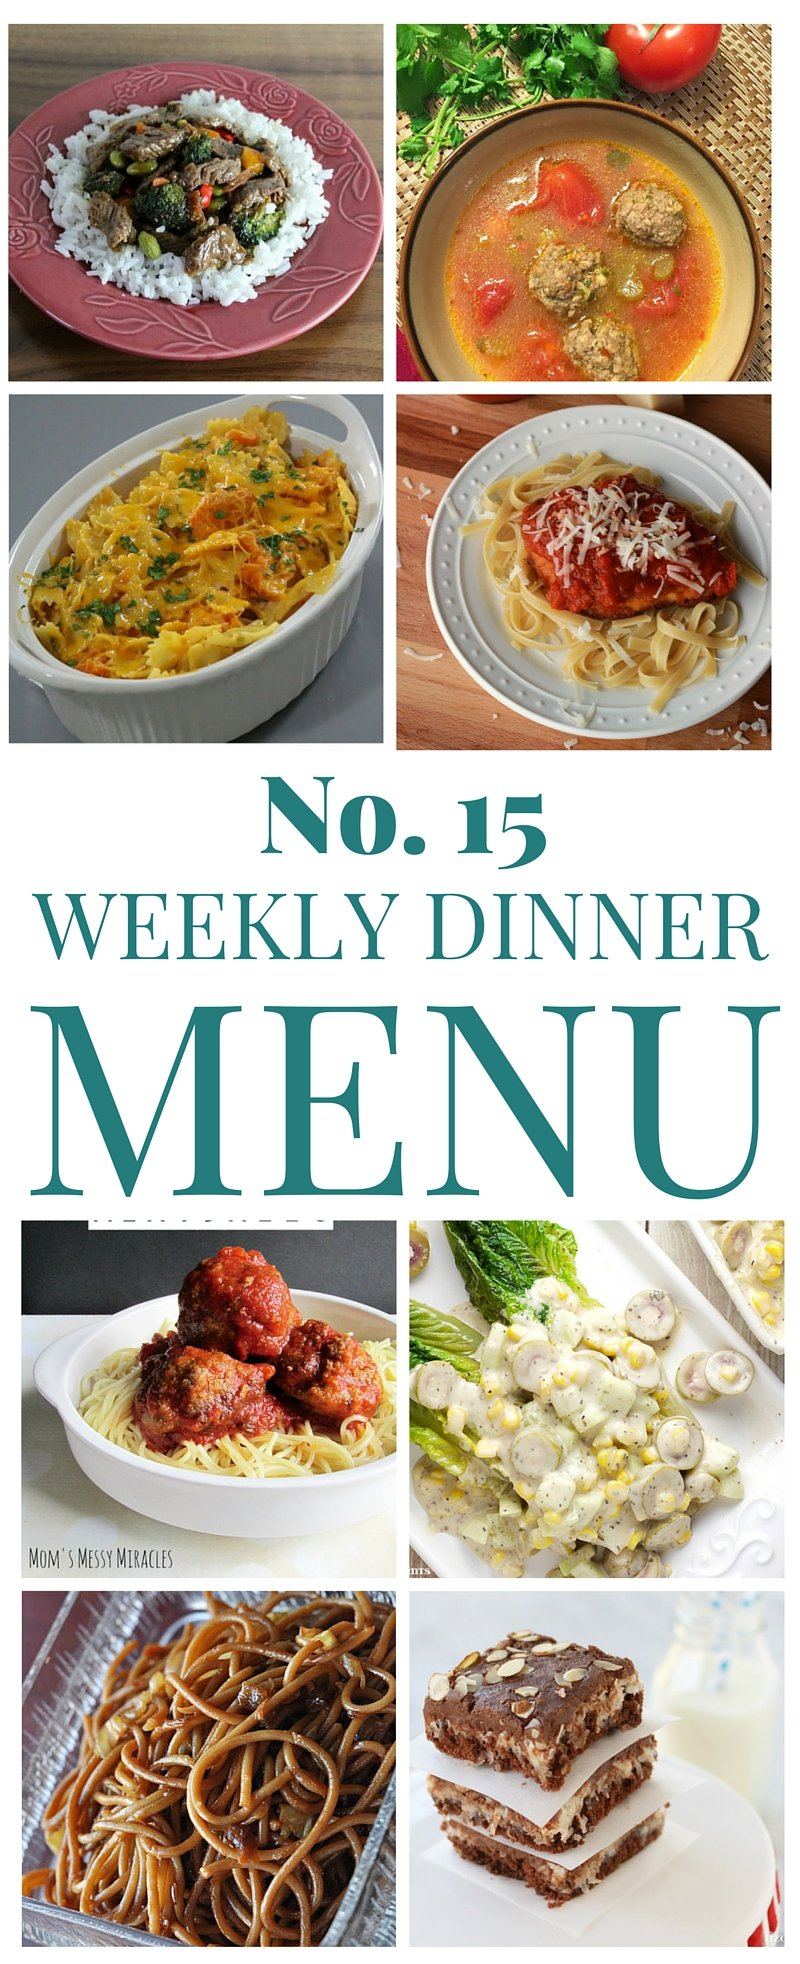 Weekly Menu Dinner Plan! Check out these tasty meal ideas!